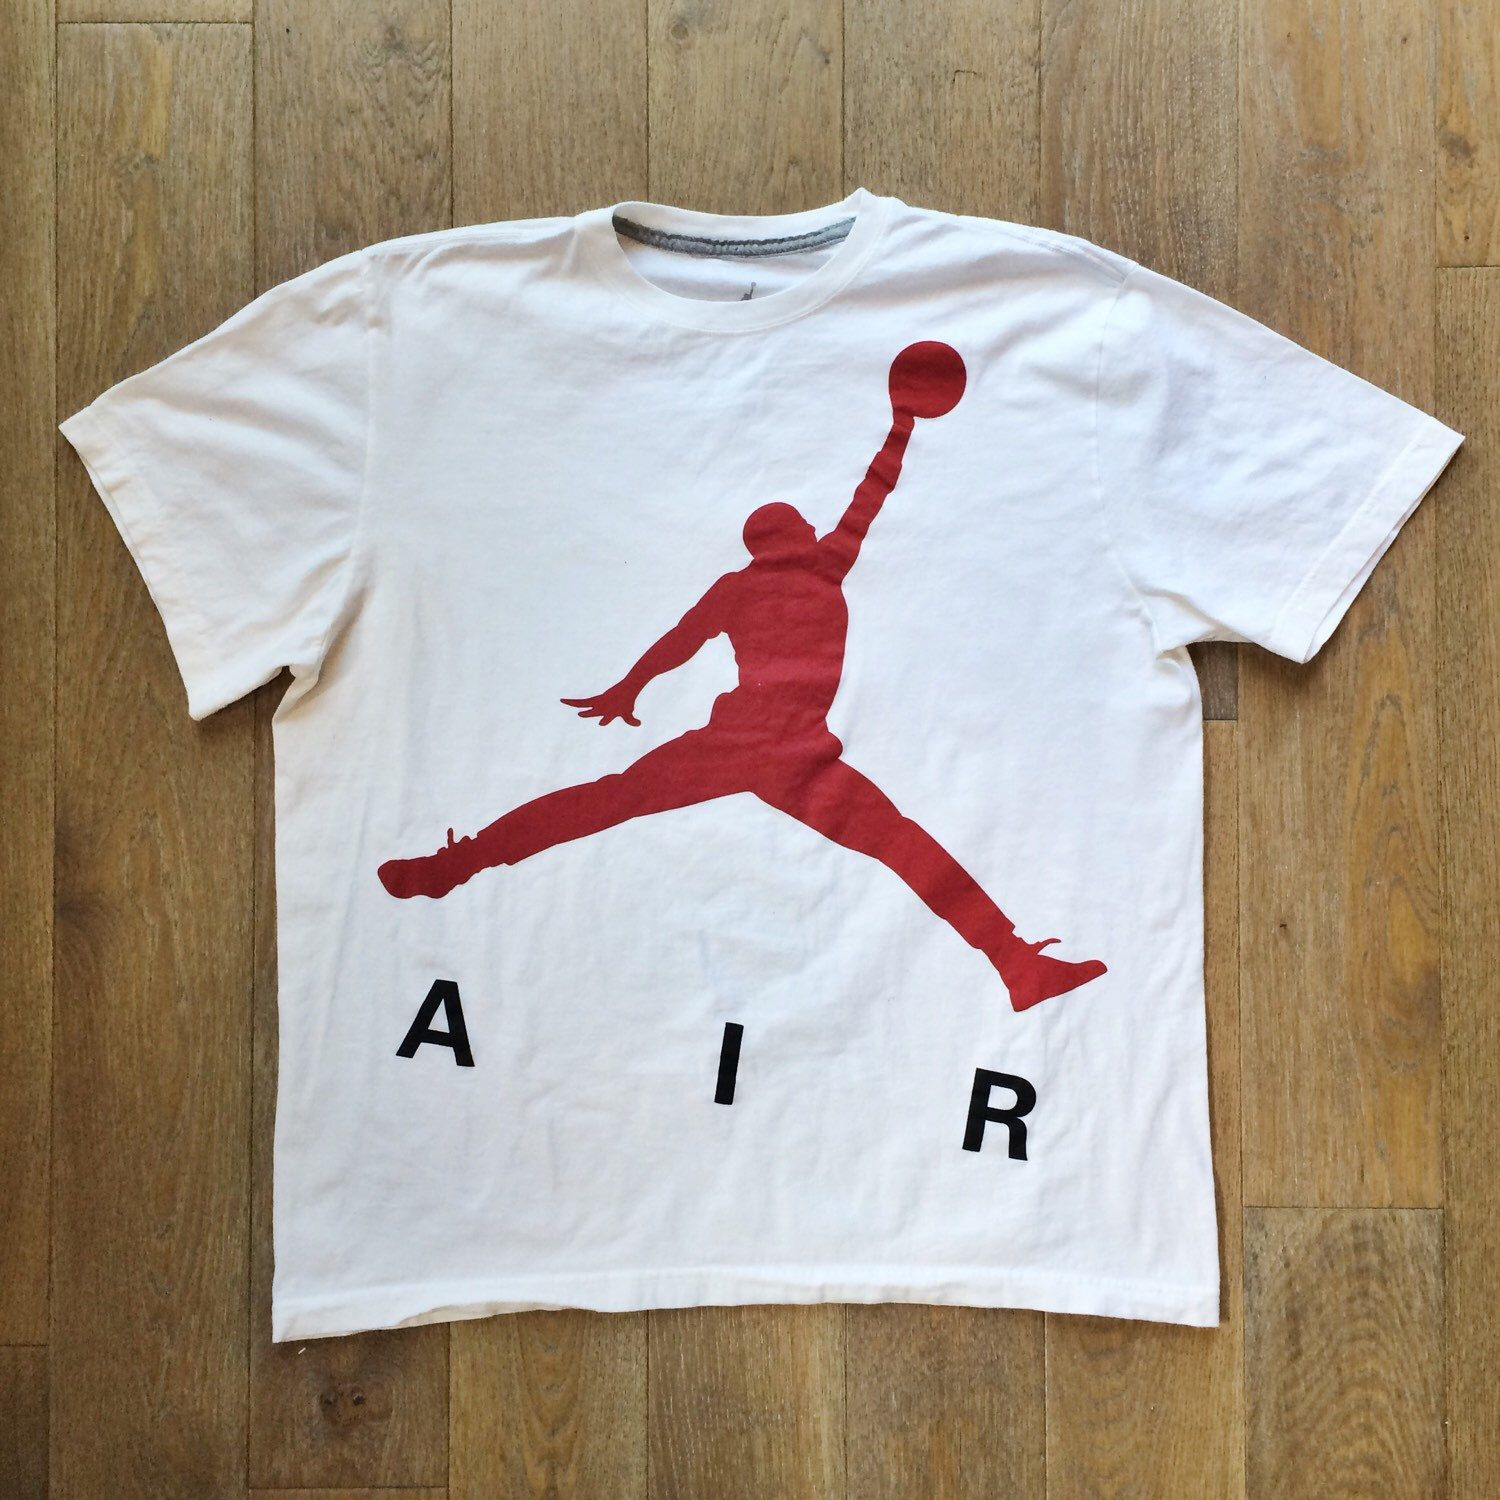 43b7fbc6d9c4a4 90s Air Jordan t shirts NBA Chicago Bulls - Michael Jordan Nike T-Shirt -